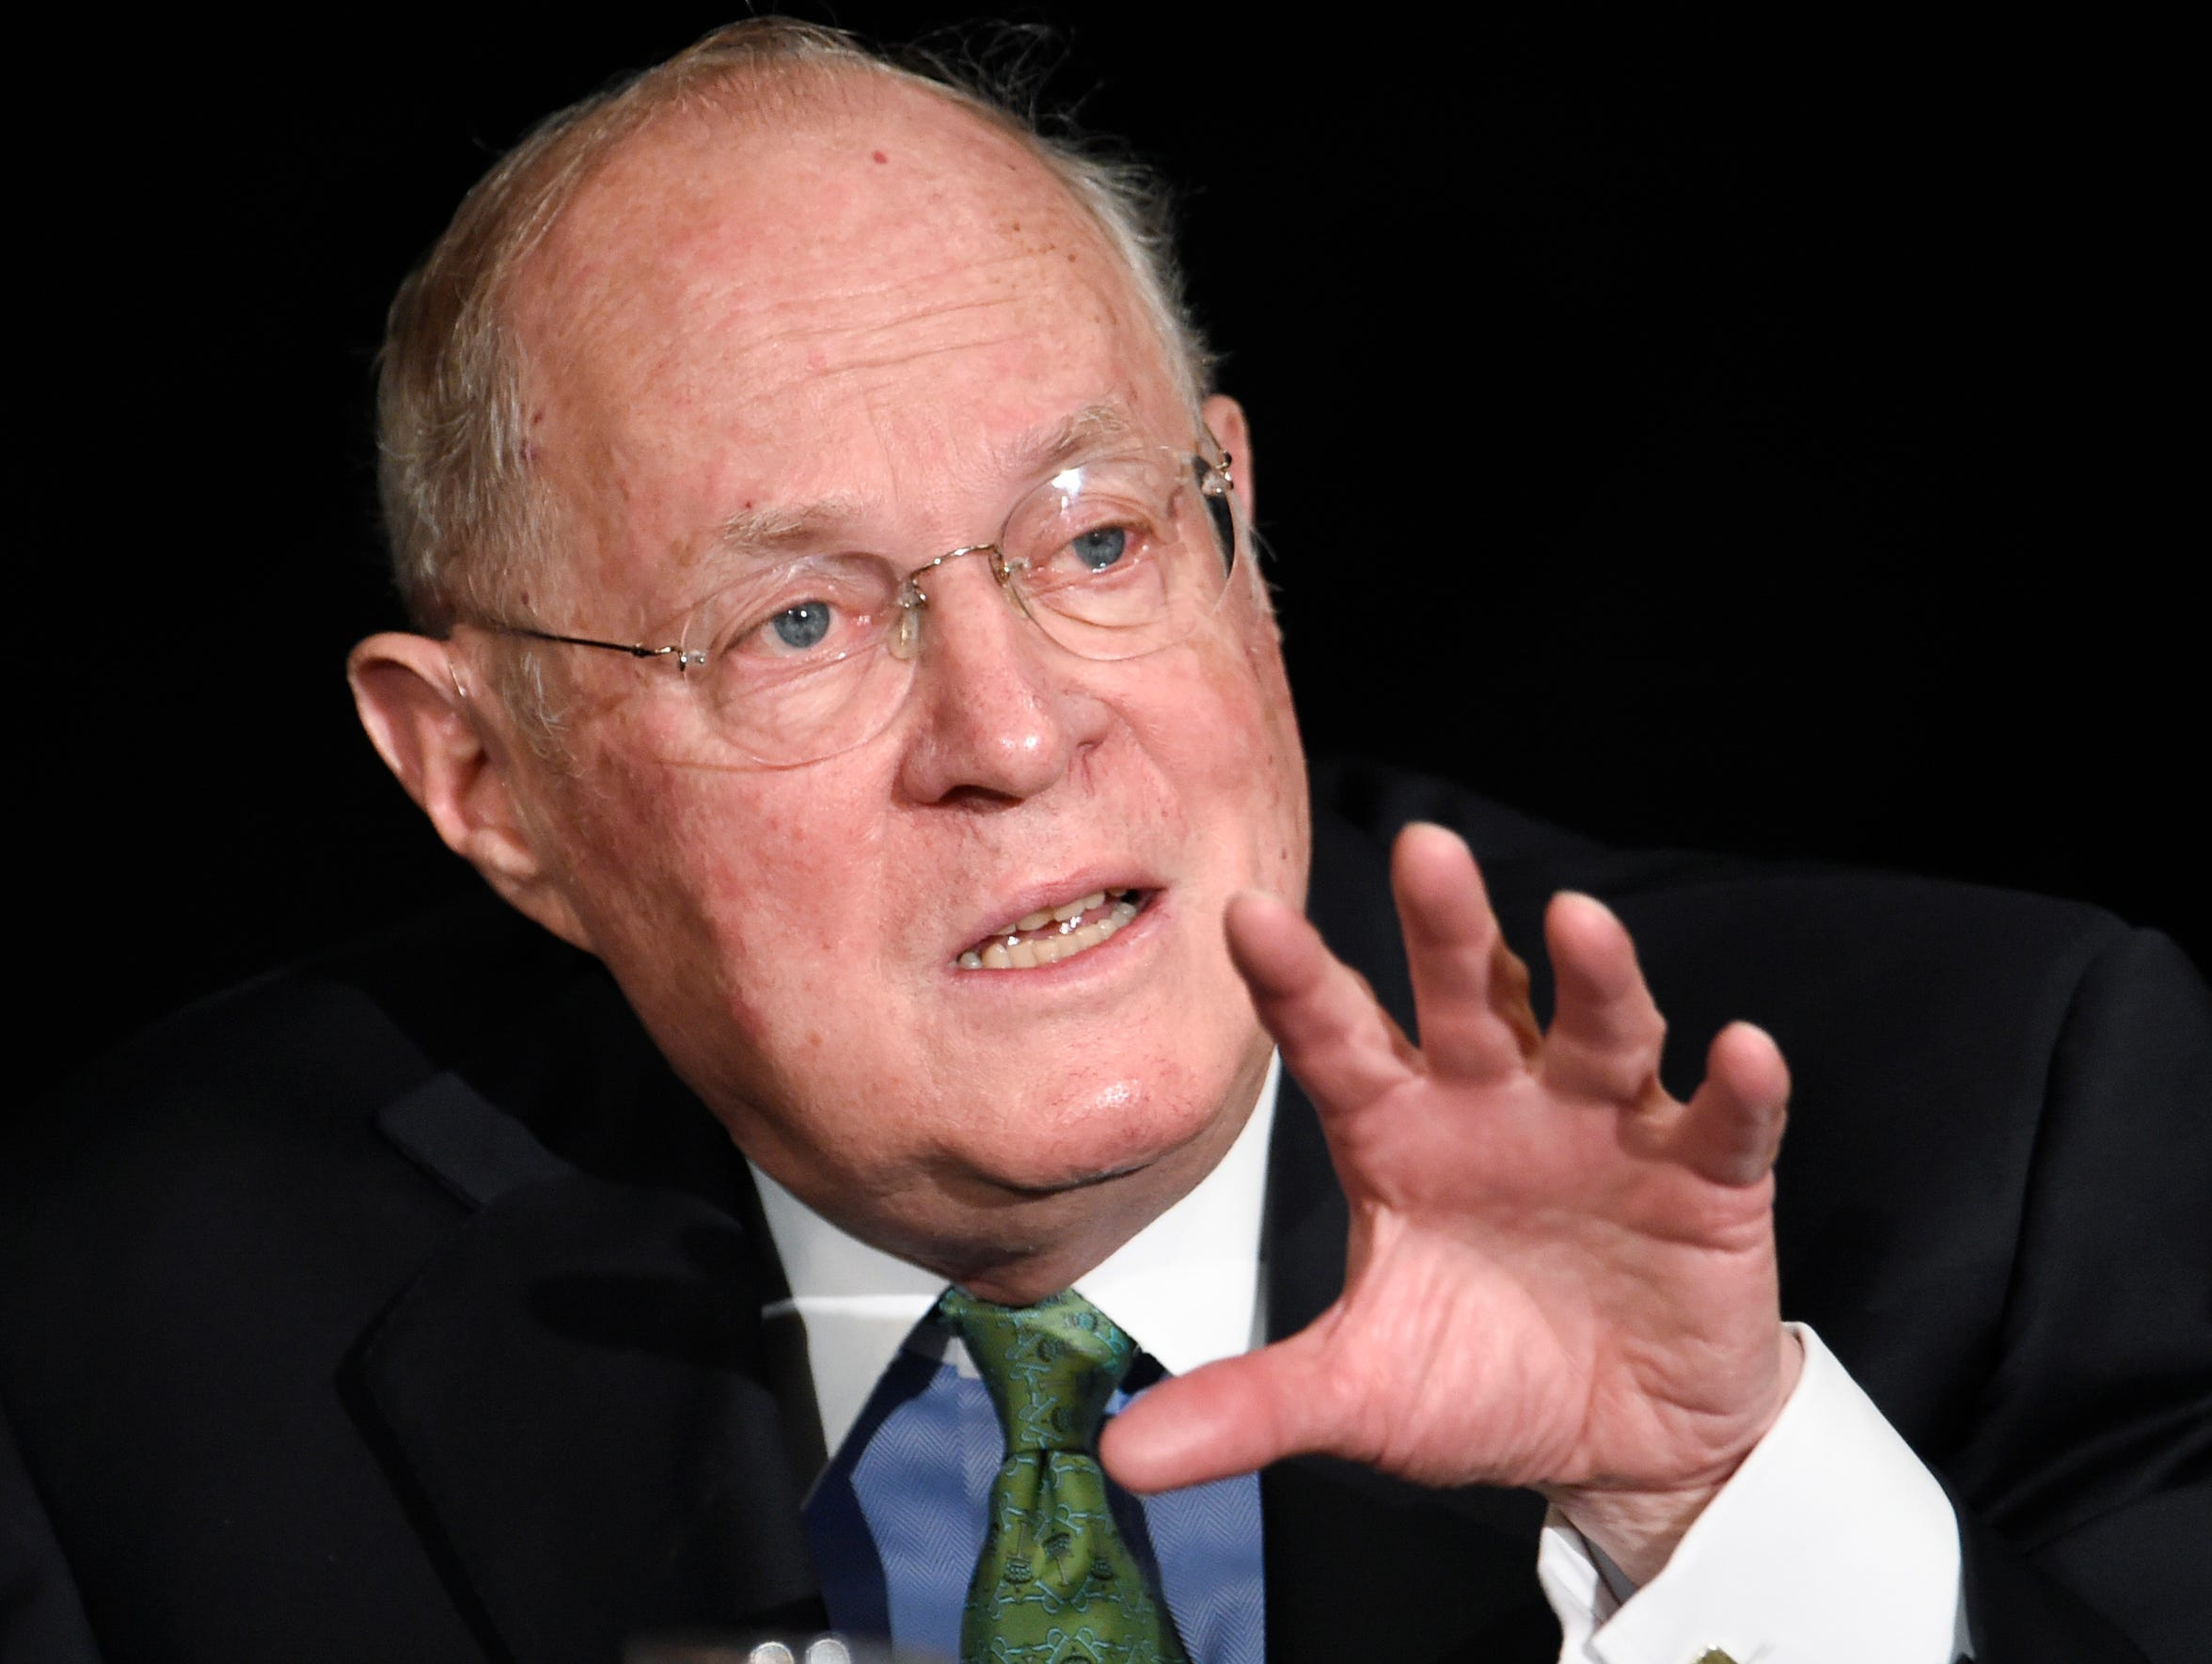 Supreme Court Justice Anthony Kennedy has cautioned